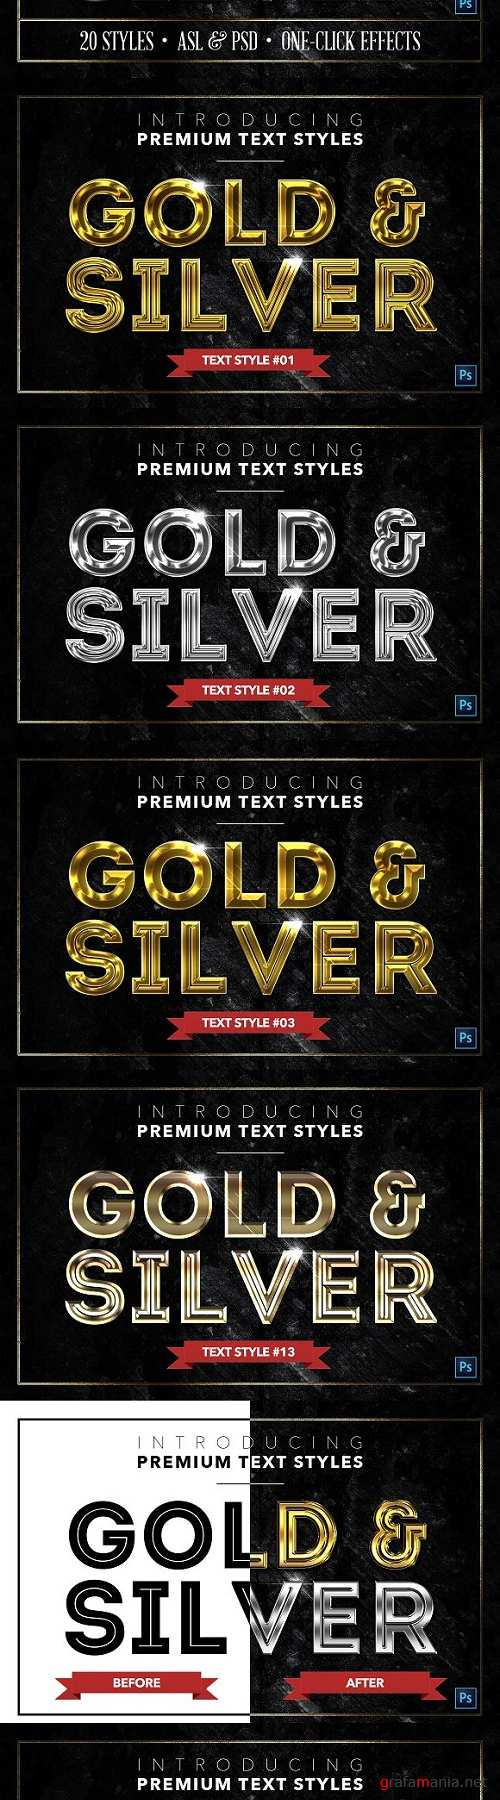 Gold & Silver #6 - 20 Text Styles - 1314556